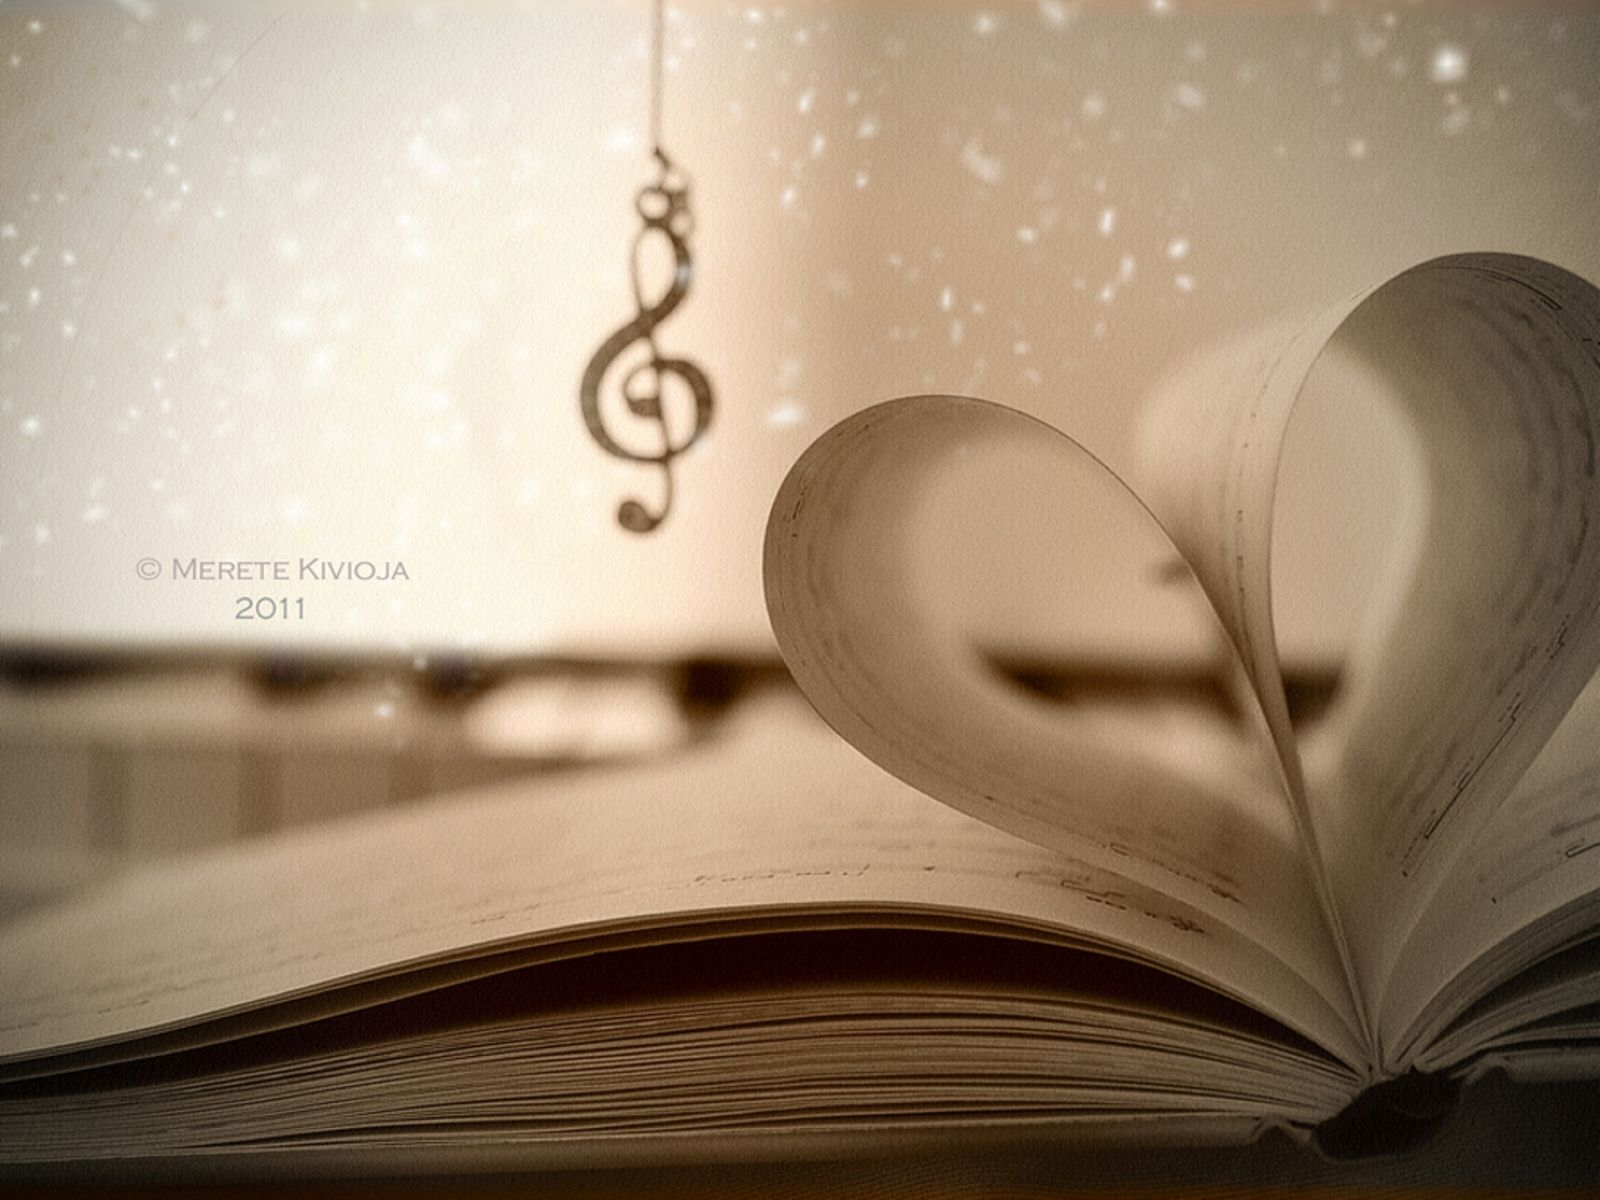 book   hd wallpapers free download   wallpapers   pinterest   books